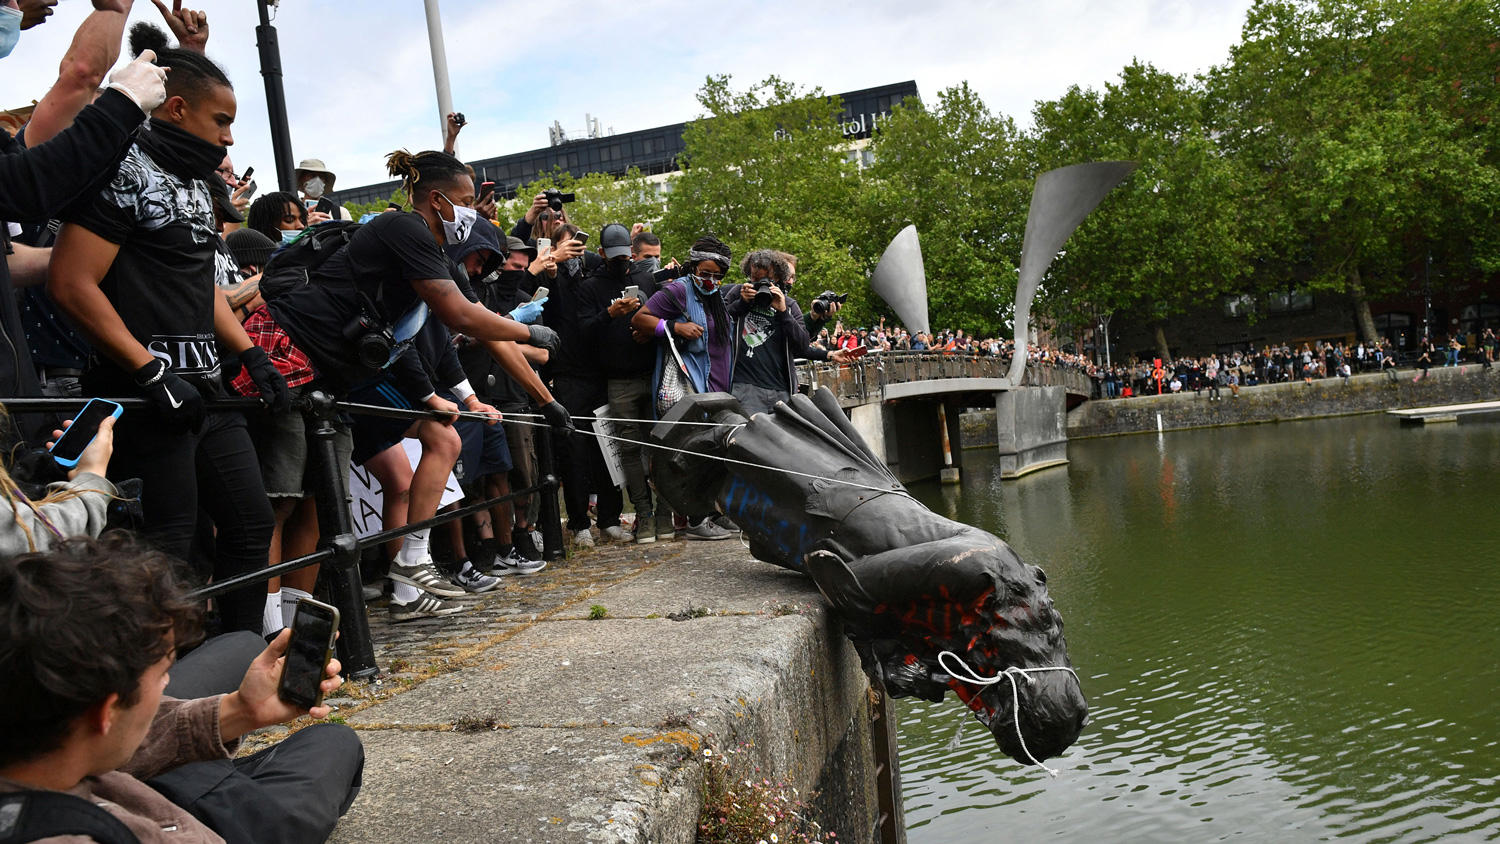 Protesters throw a statue of slave trader Edward Colston into Bristol harbour, during a Black Lives Matter protest rally, in Bristol, England, on June 7.